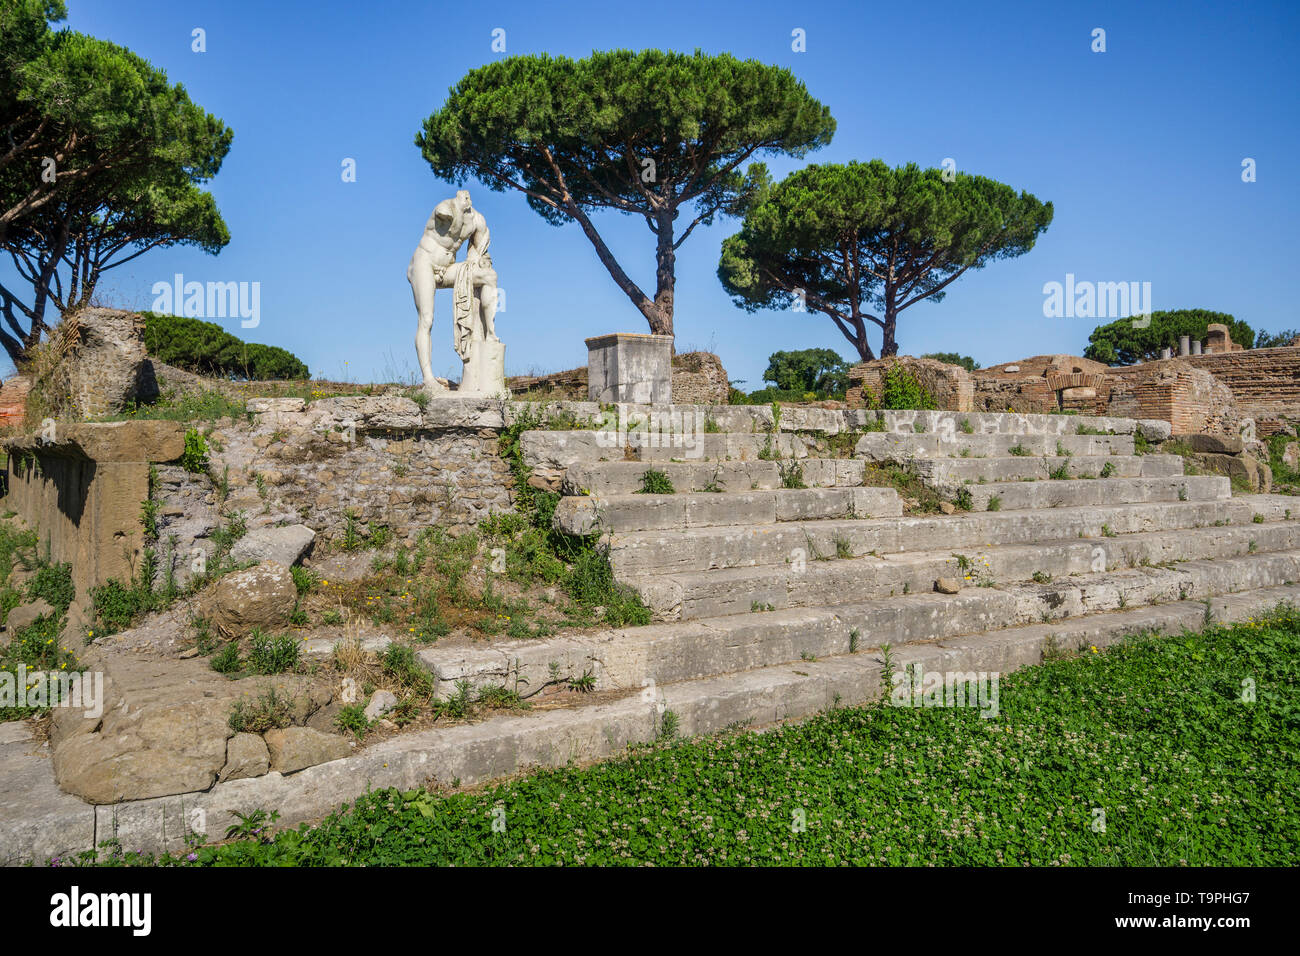 marble statue dedicated to Hercules at Tempio di Ercole, the Temple of Hercules, archeological site of the Roman settlement of Ostia Antica, the ancie - Stock Image